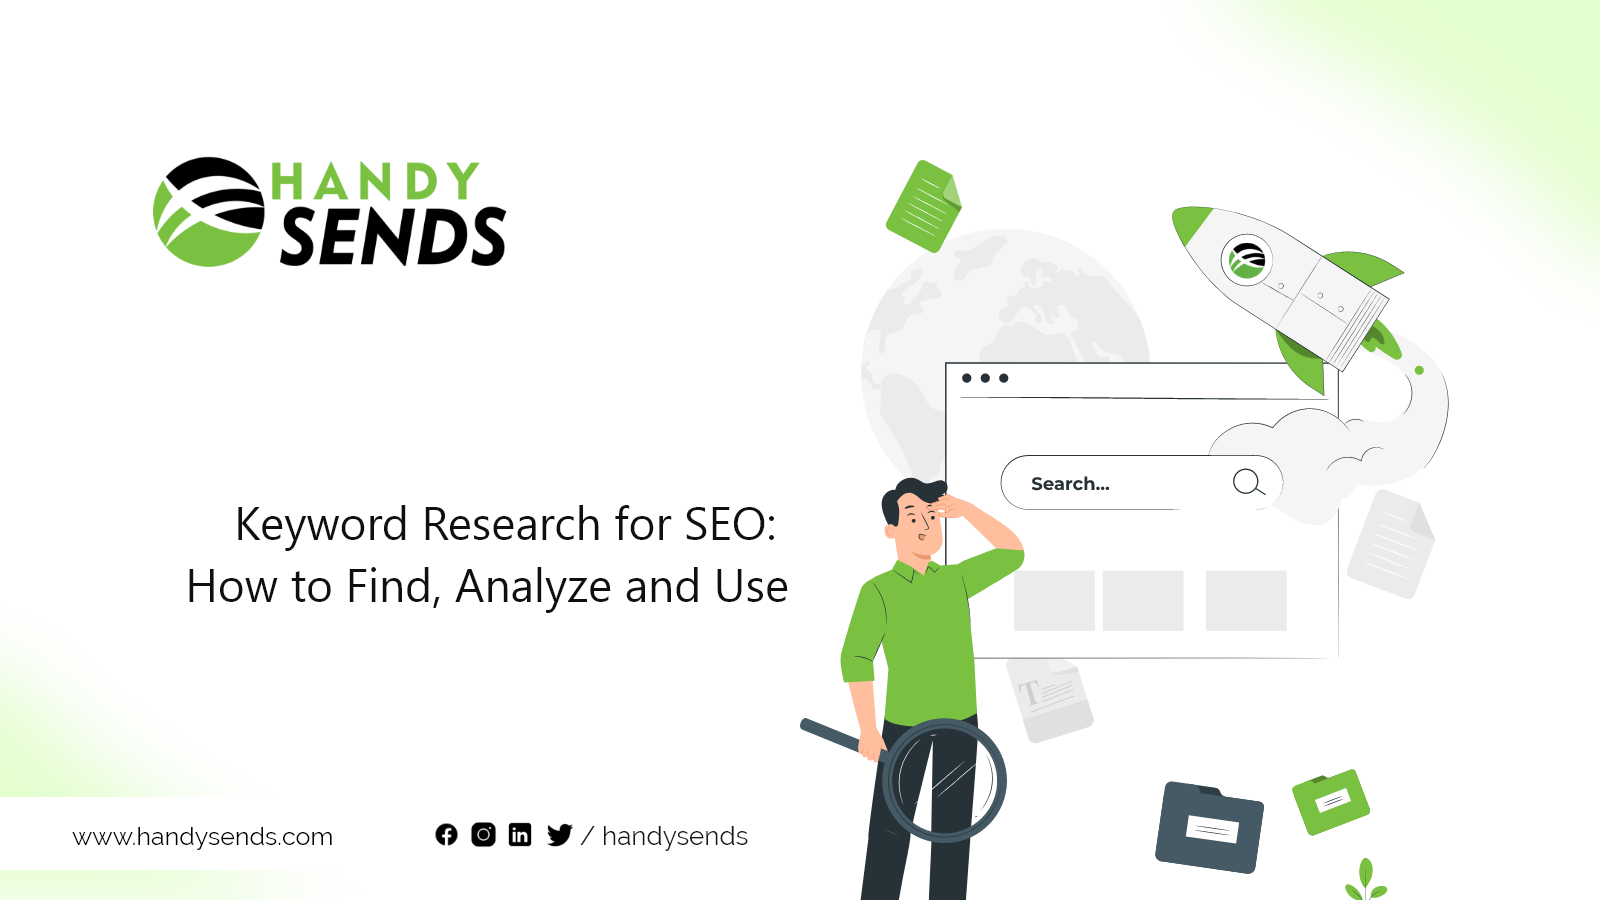 Keyword Research for SEO: How to Find, Analyze and Use